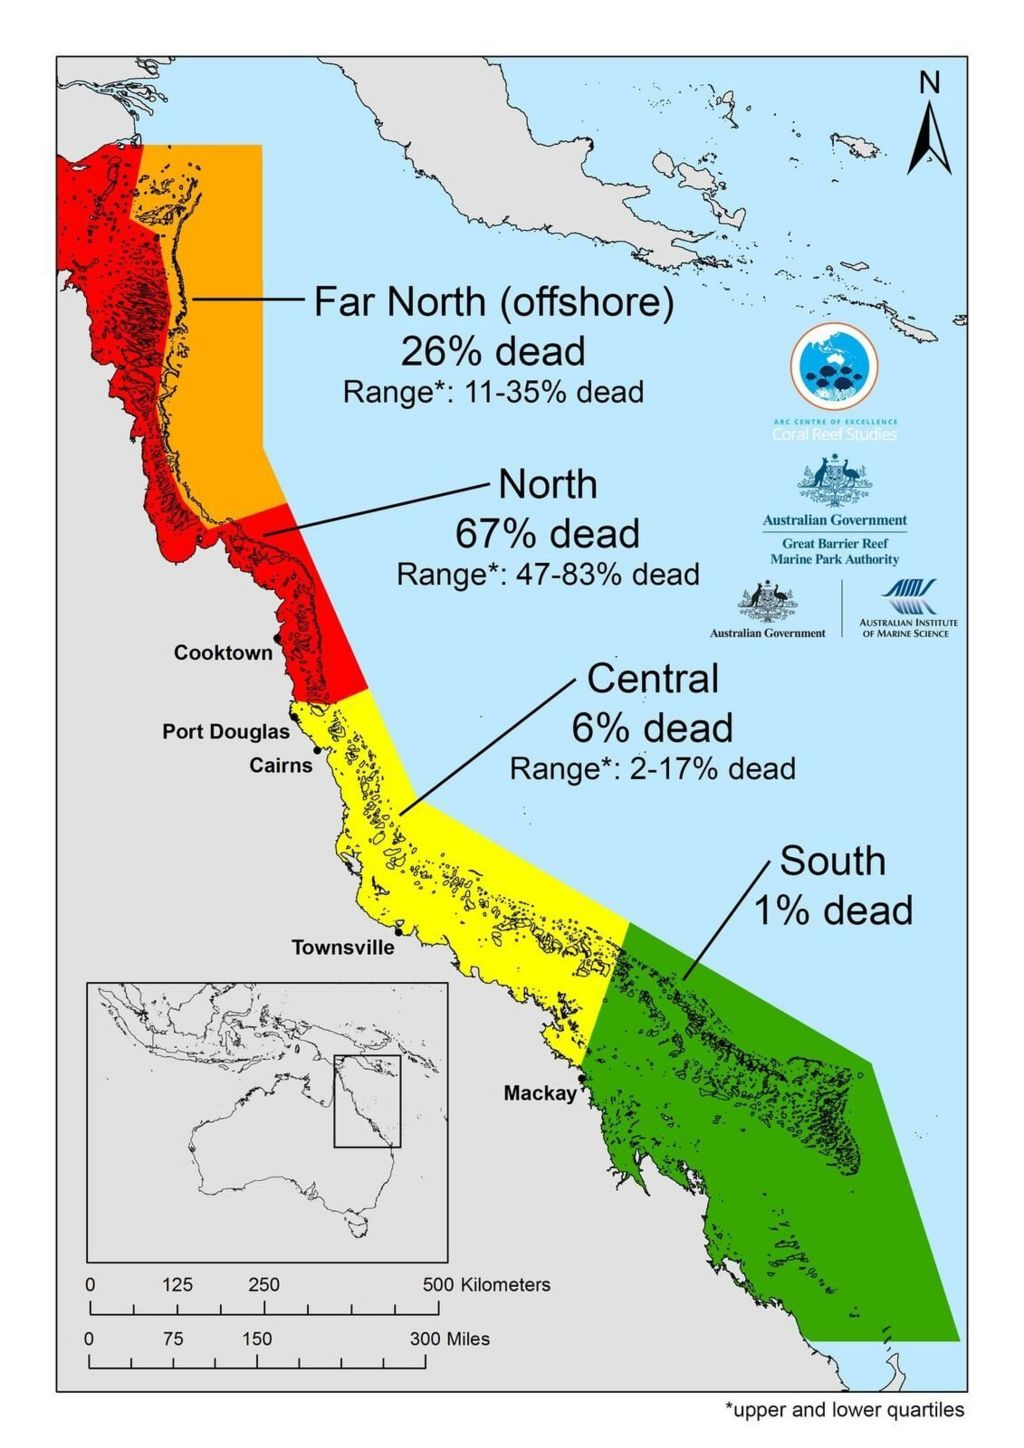 The map, detailing coral loss on Great Barrier Reef, shows how mortality varies enormously from north to south